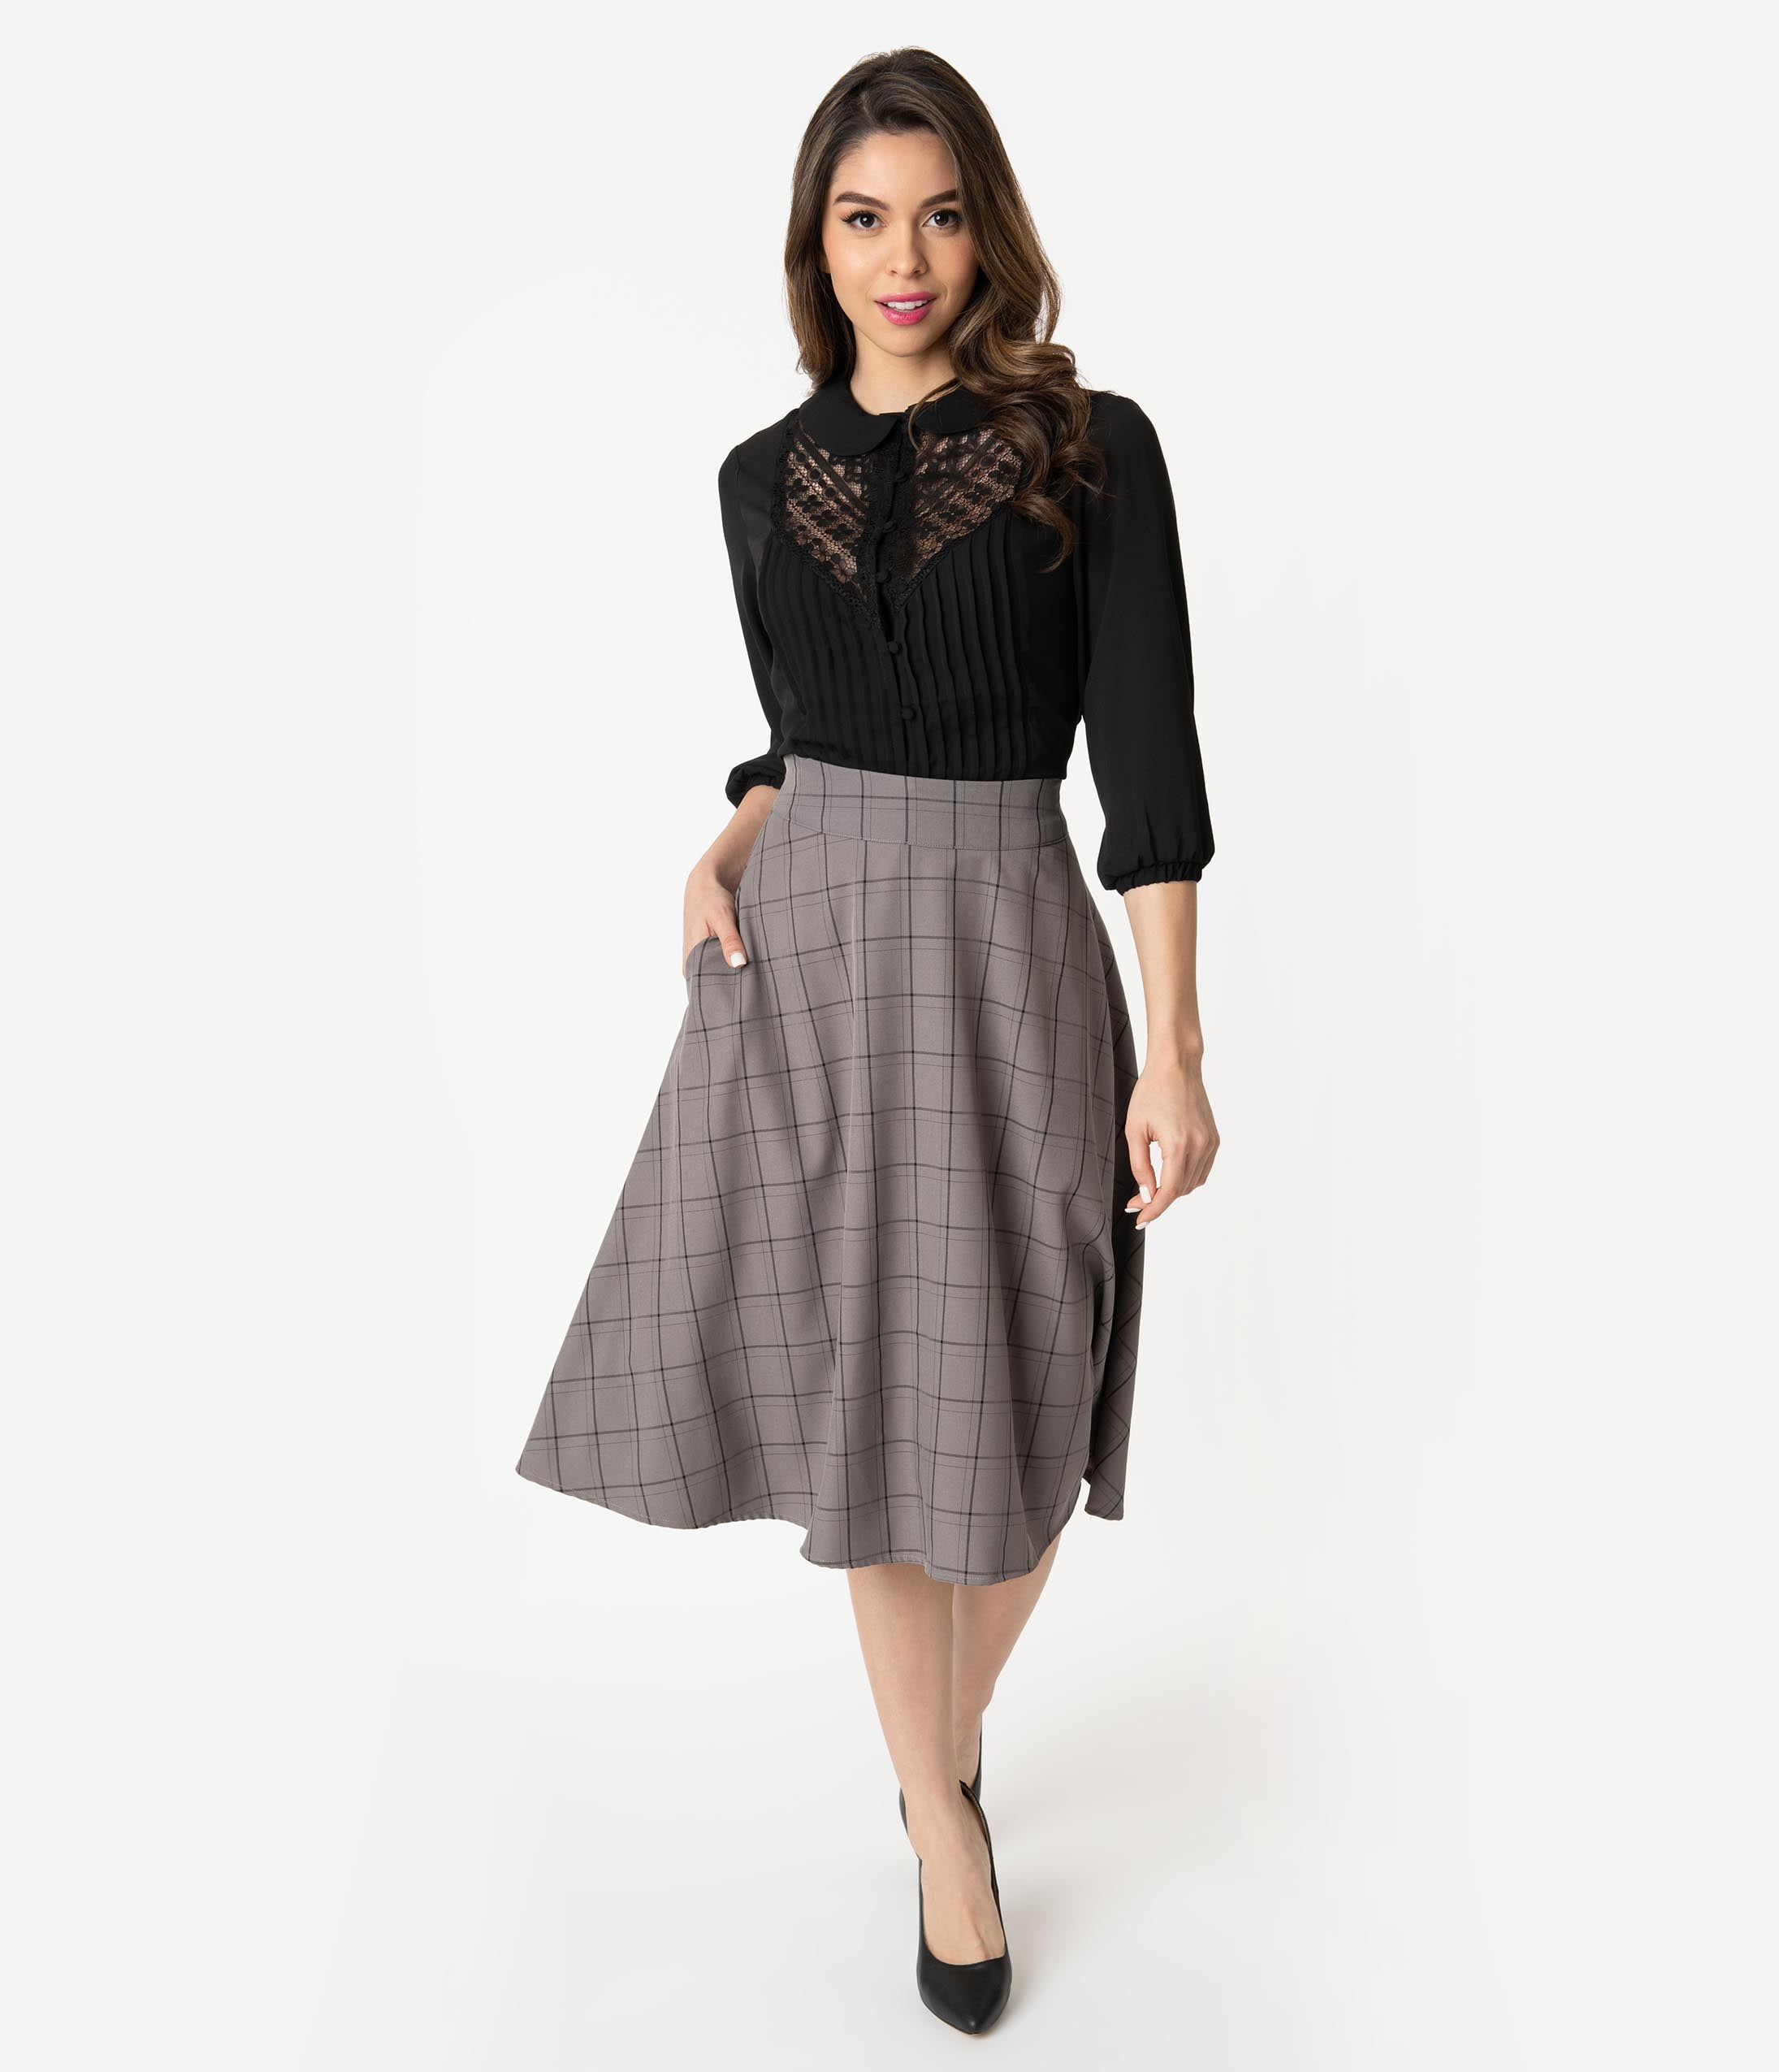 1940s Style Skirts- Vintage High Waisted Skirts Unique Vintage Retro Style Grey  Black Windowpane High Waist Vivien Swing Skirt $58.00 AT vintagedancer.com